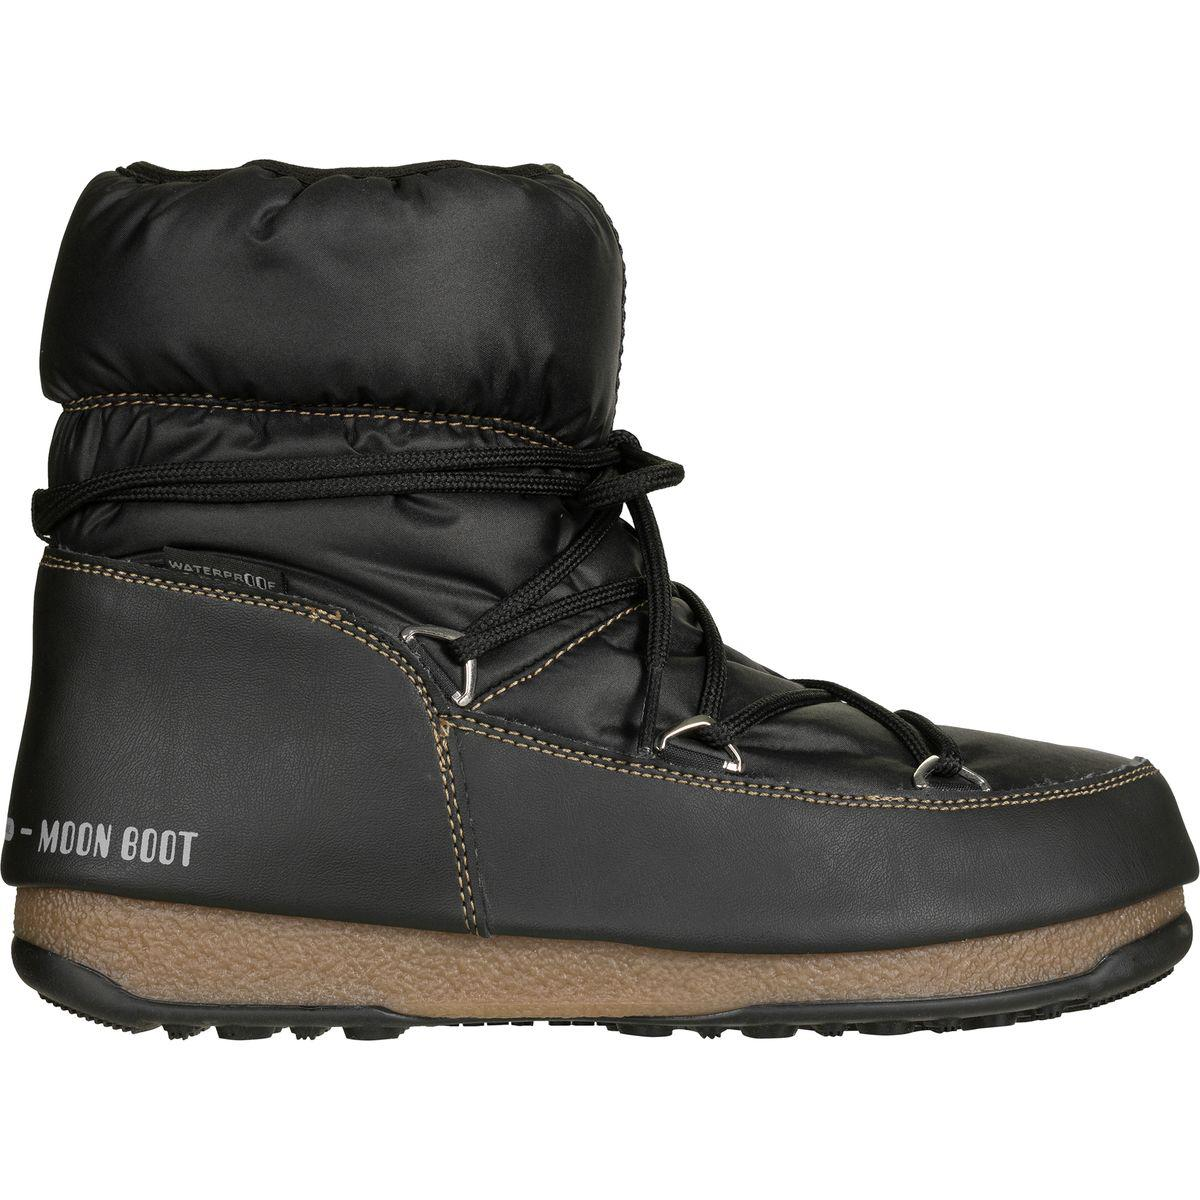 27b9b7a536be Lyst - Tecnica We Low Nylon Wp Boot in Black